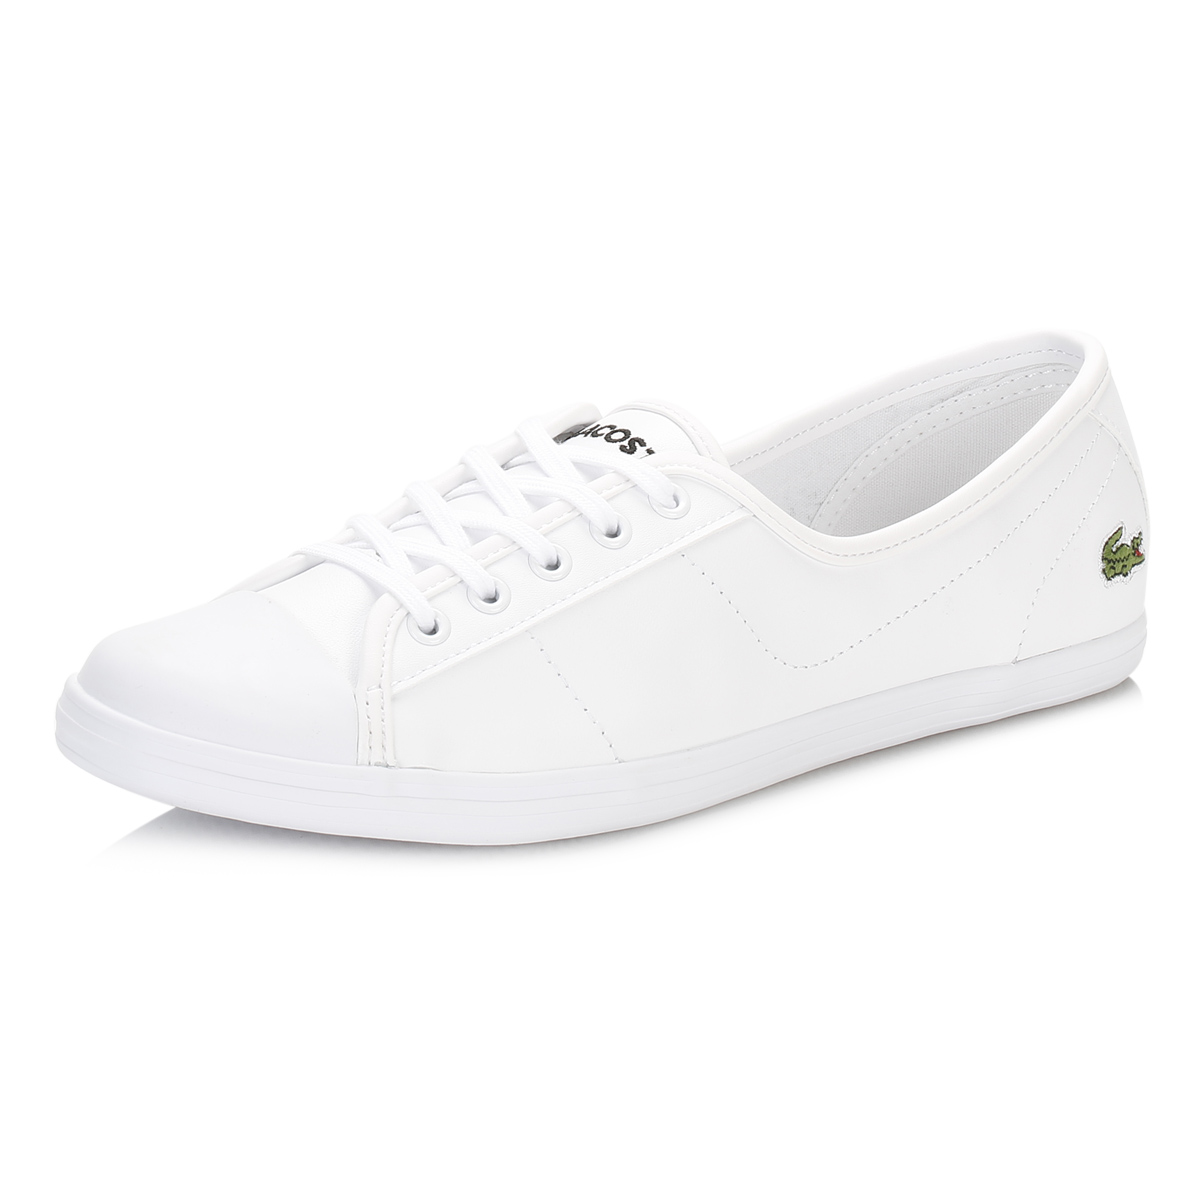 17dd501b7e4a Details about Lacoste Womens Trainers White Ziane BL 1 SPW Leather Lace Up Shoes  Casual Flats